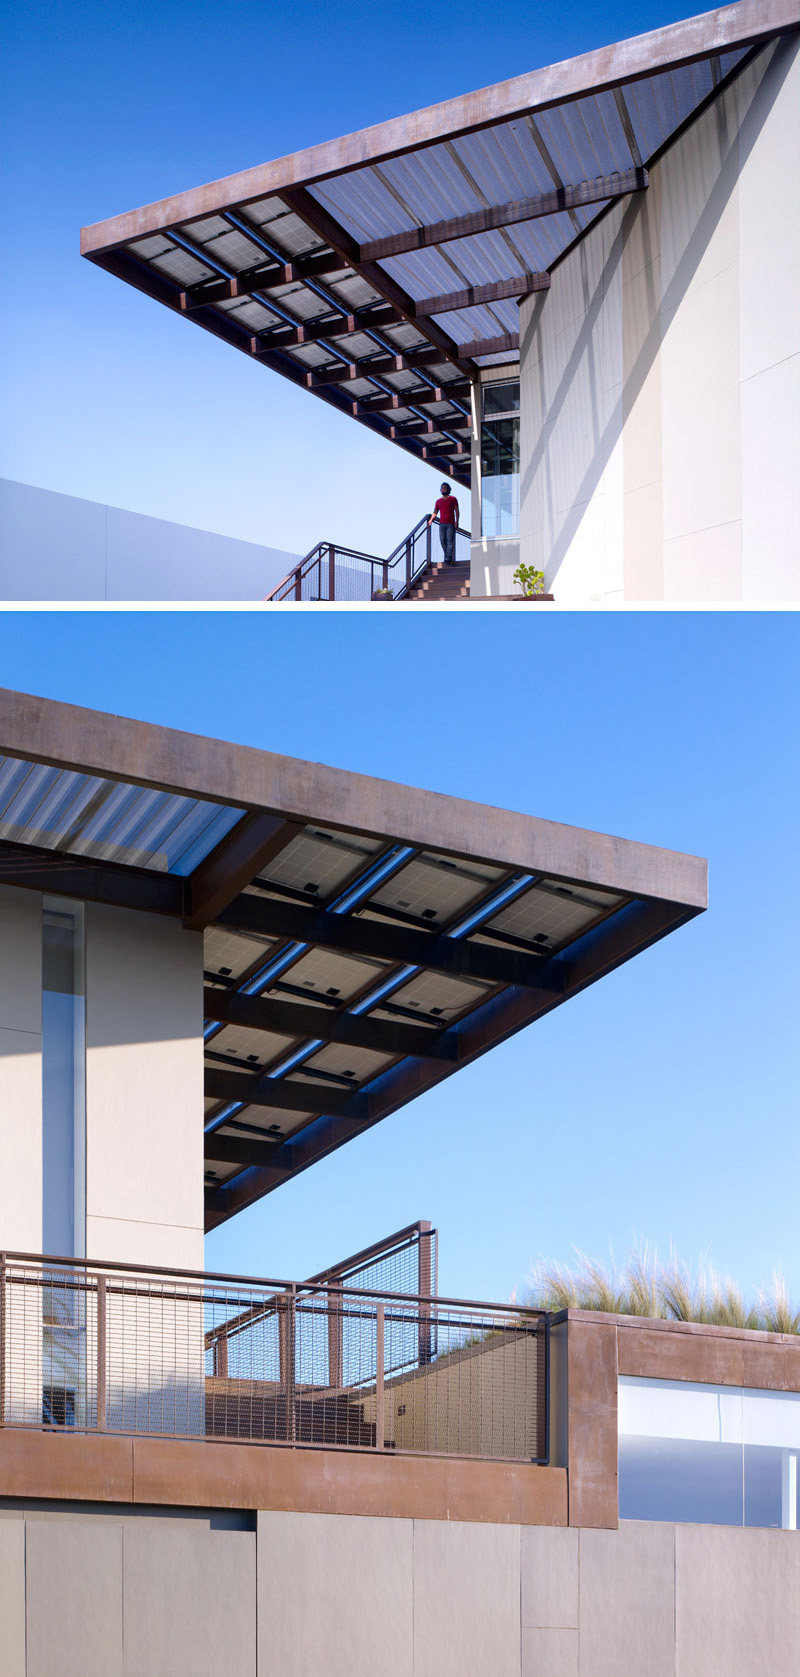 This modern overhanging roof has solar panels and extends out over the stairs providing shade from the sun.